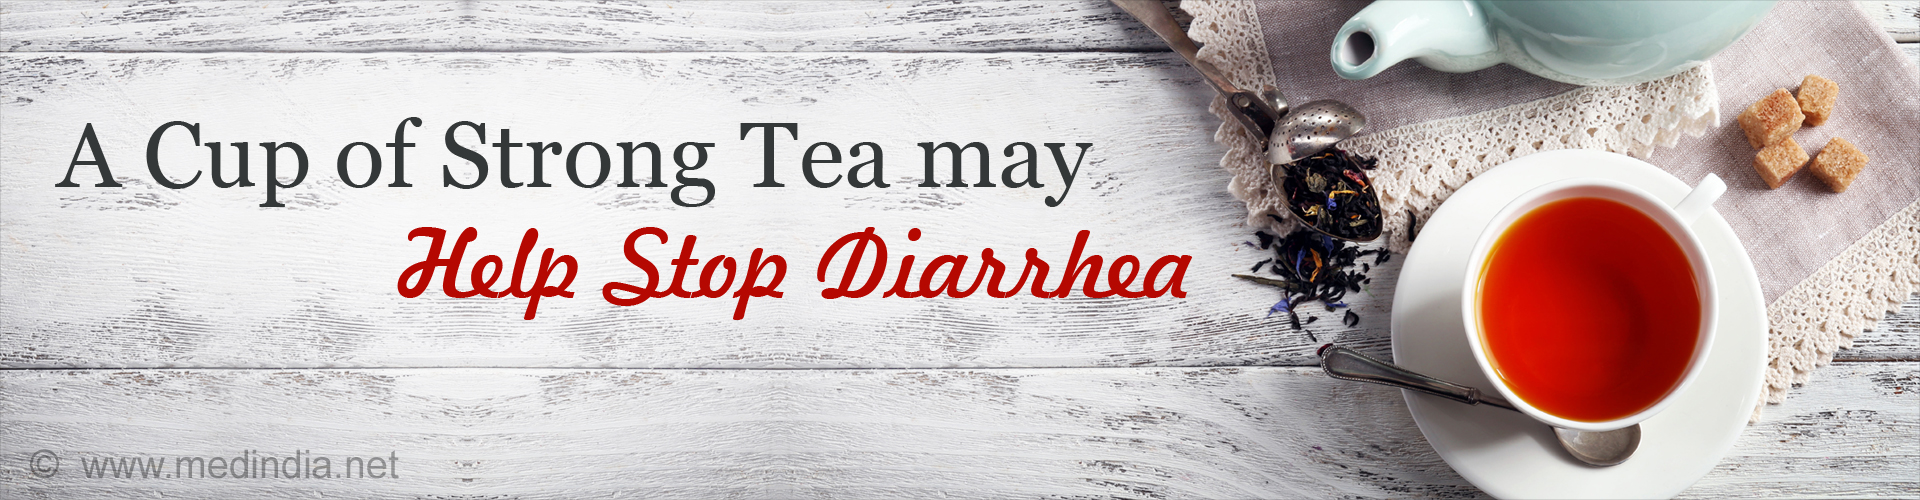 Home Remedies for DIARRHOEA